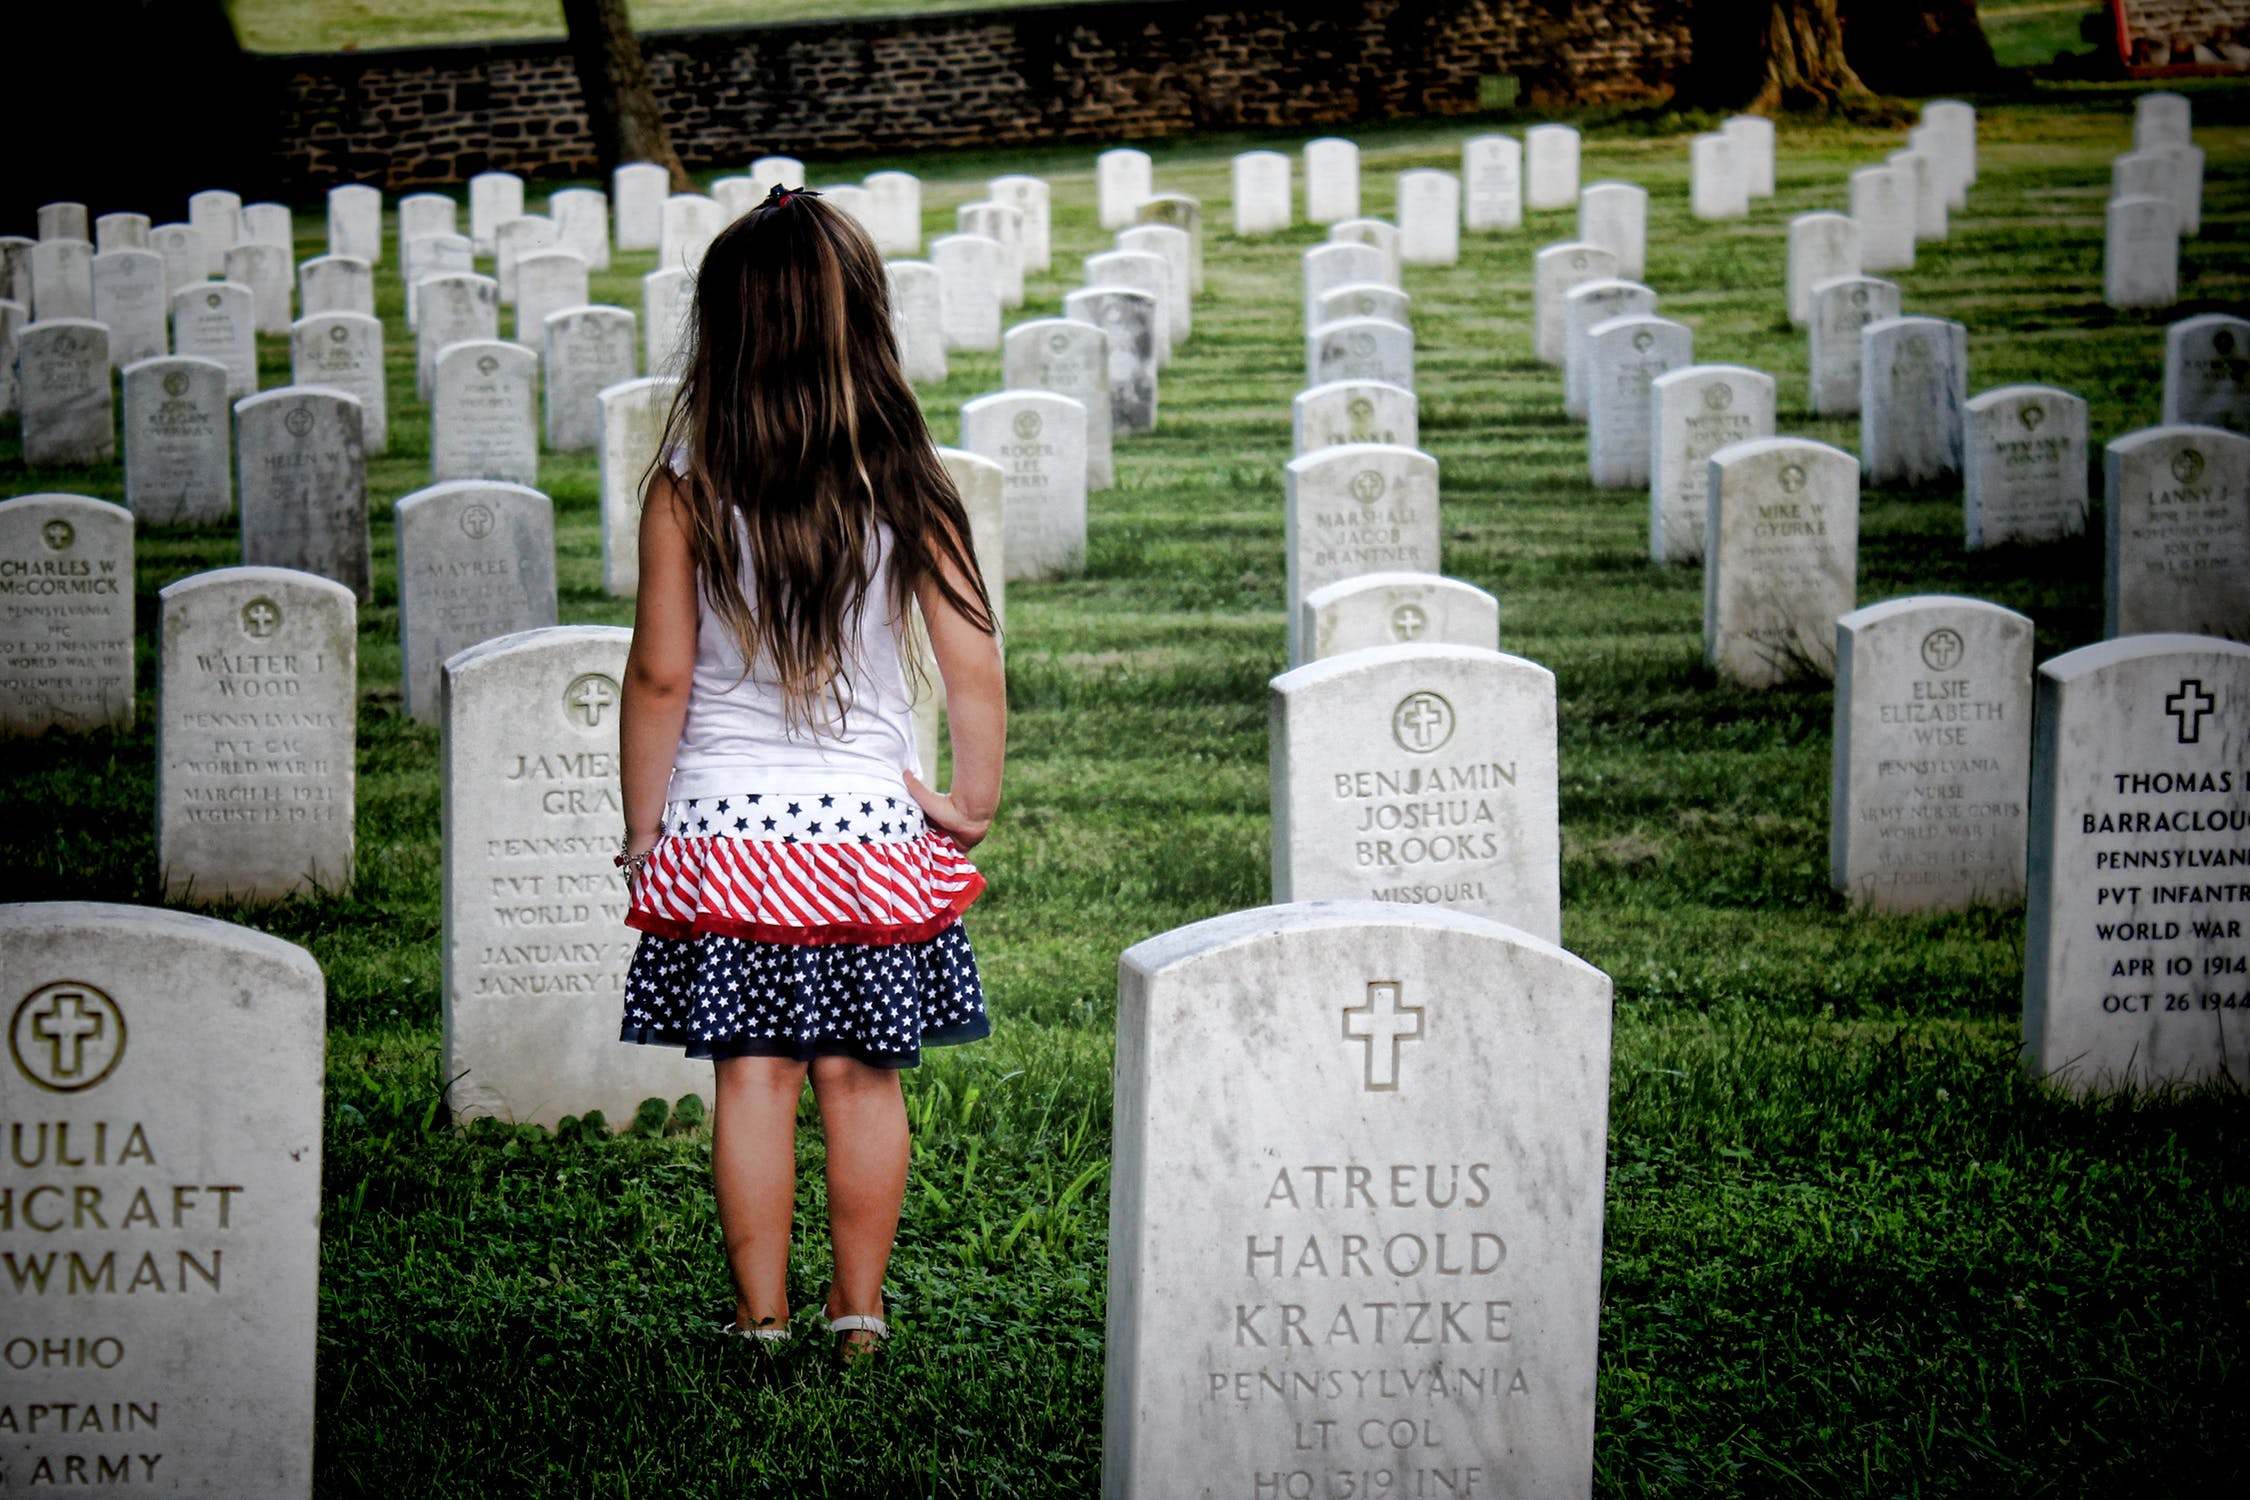 A young girl remembering her loved one at a veterans cemetery.